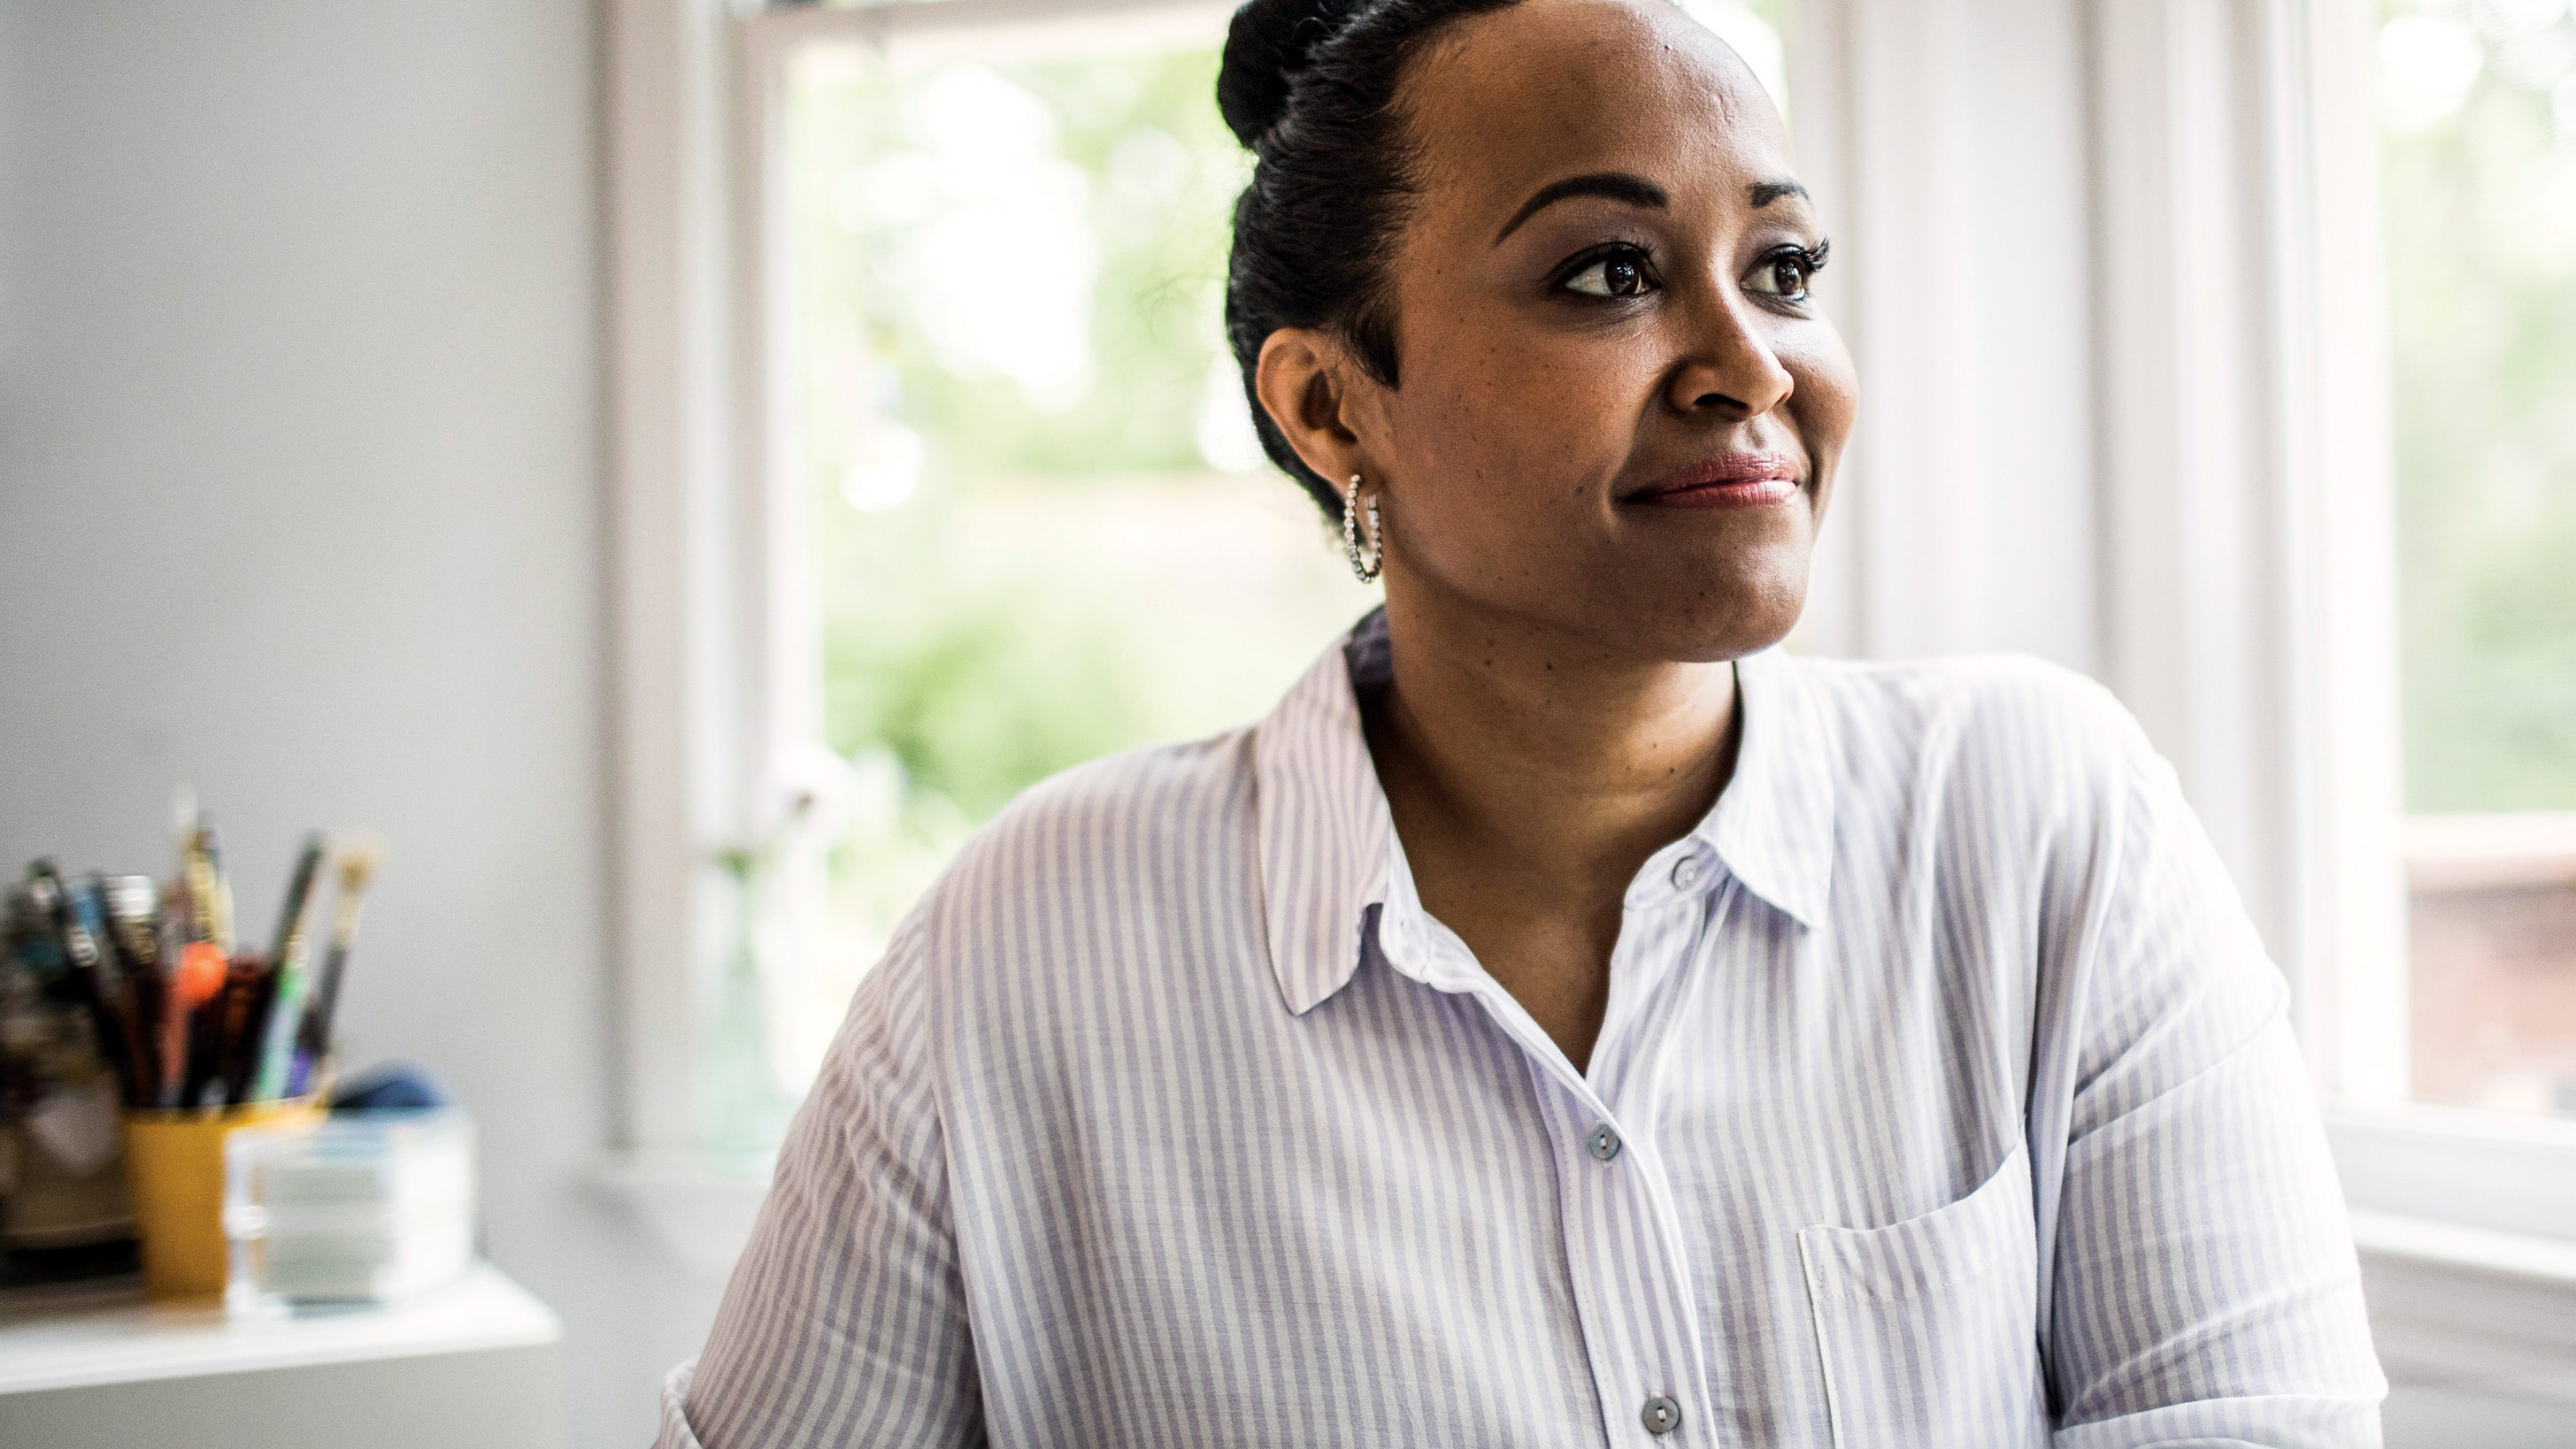 An African-American woman gazes out of a window in her modern home office, smiling.